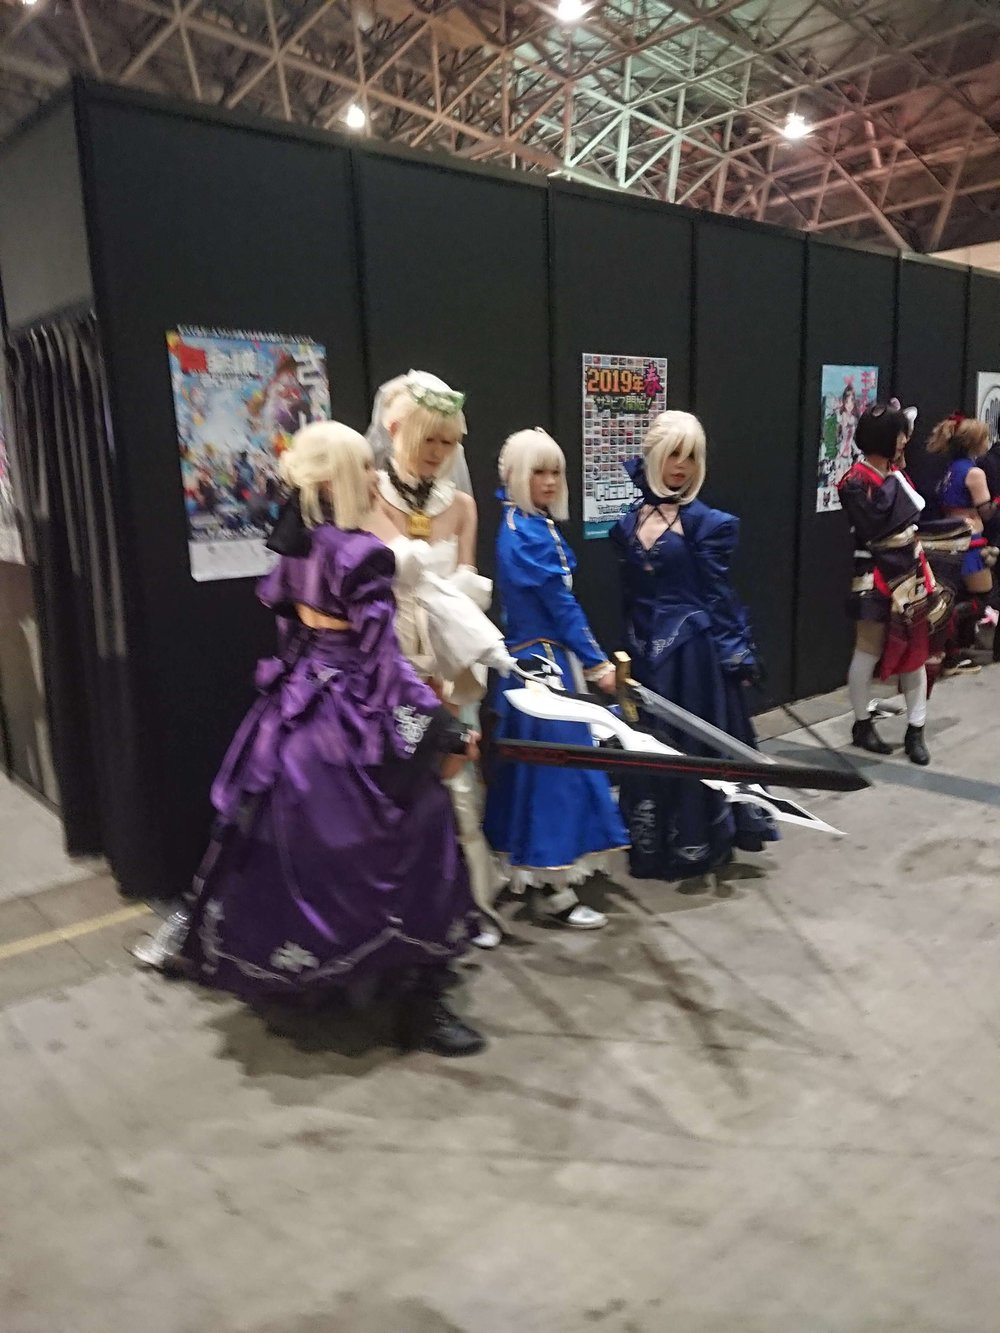 Three Sword Weilding Lady Cosplayers